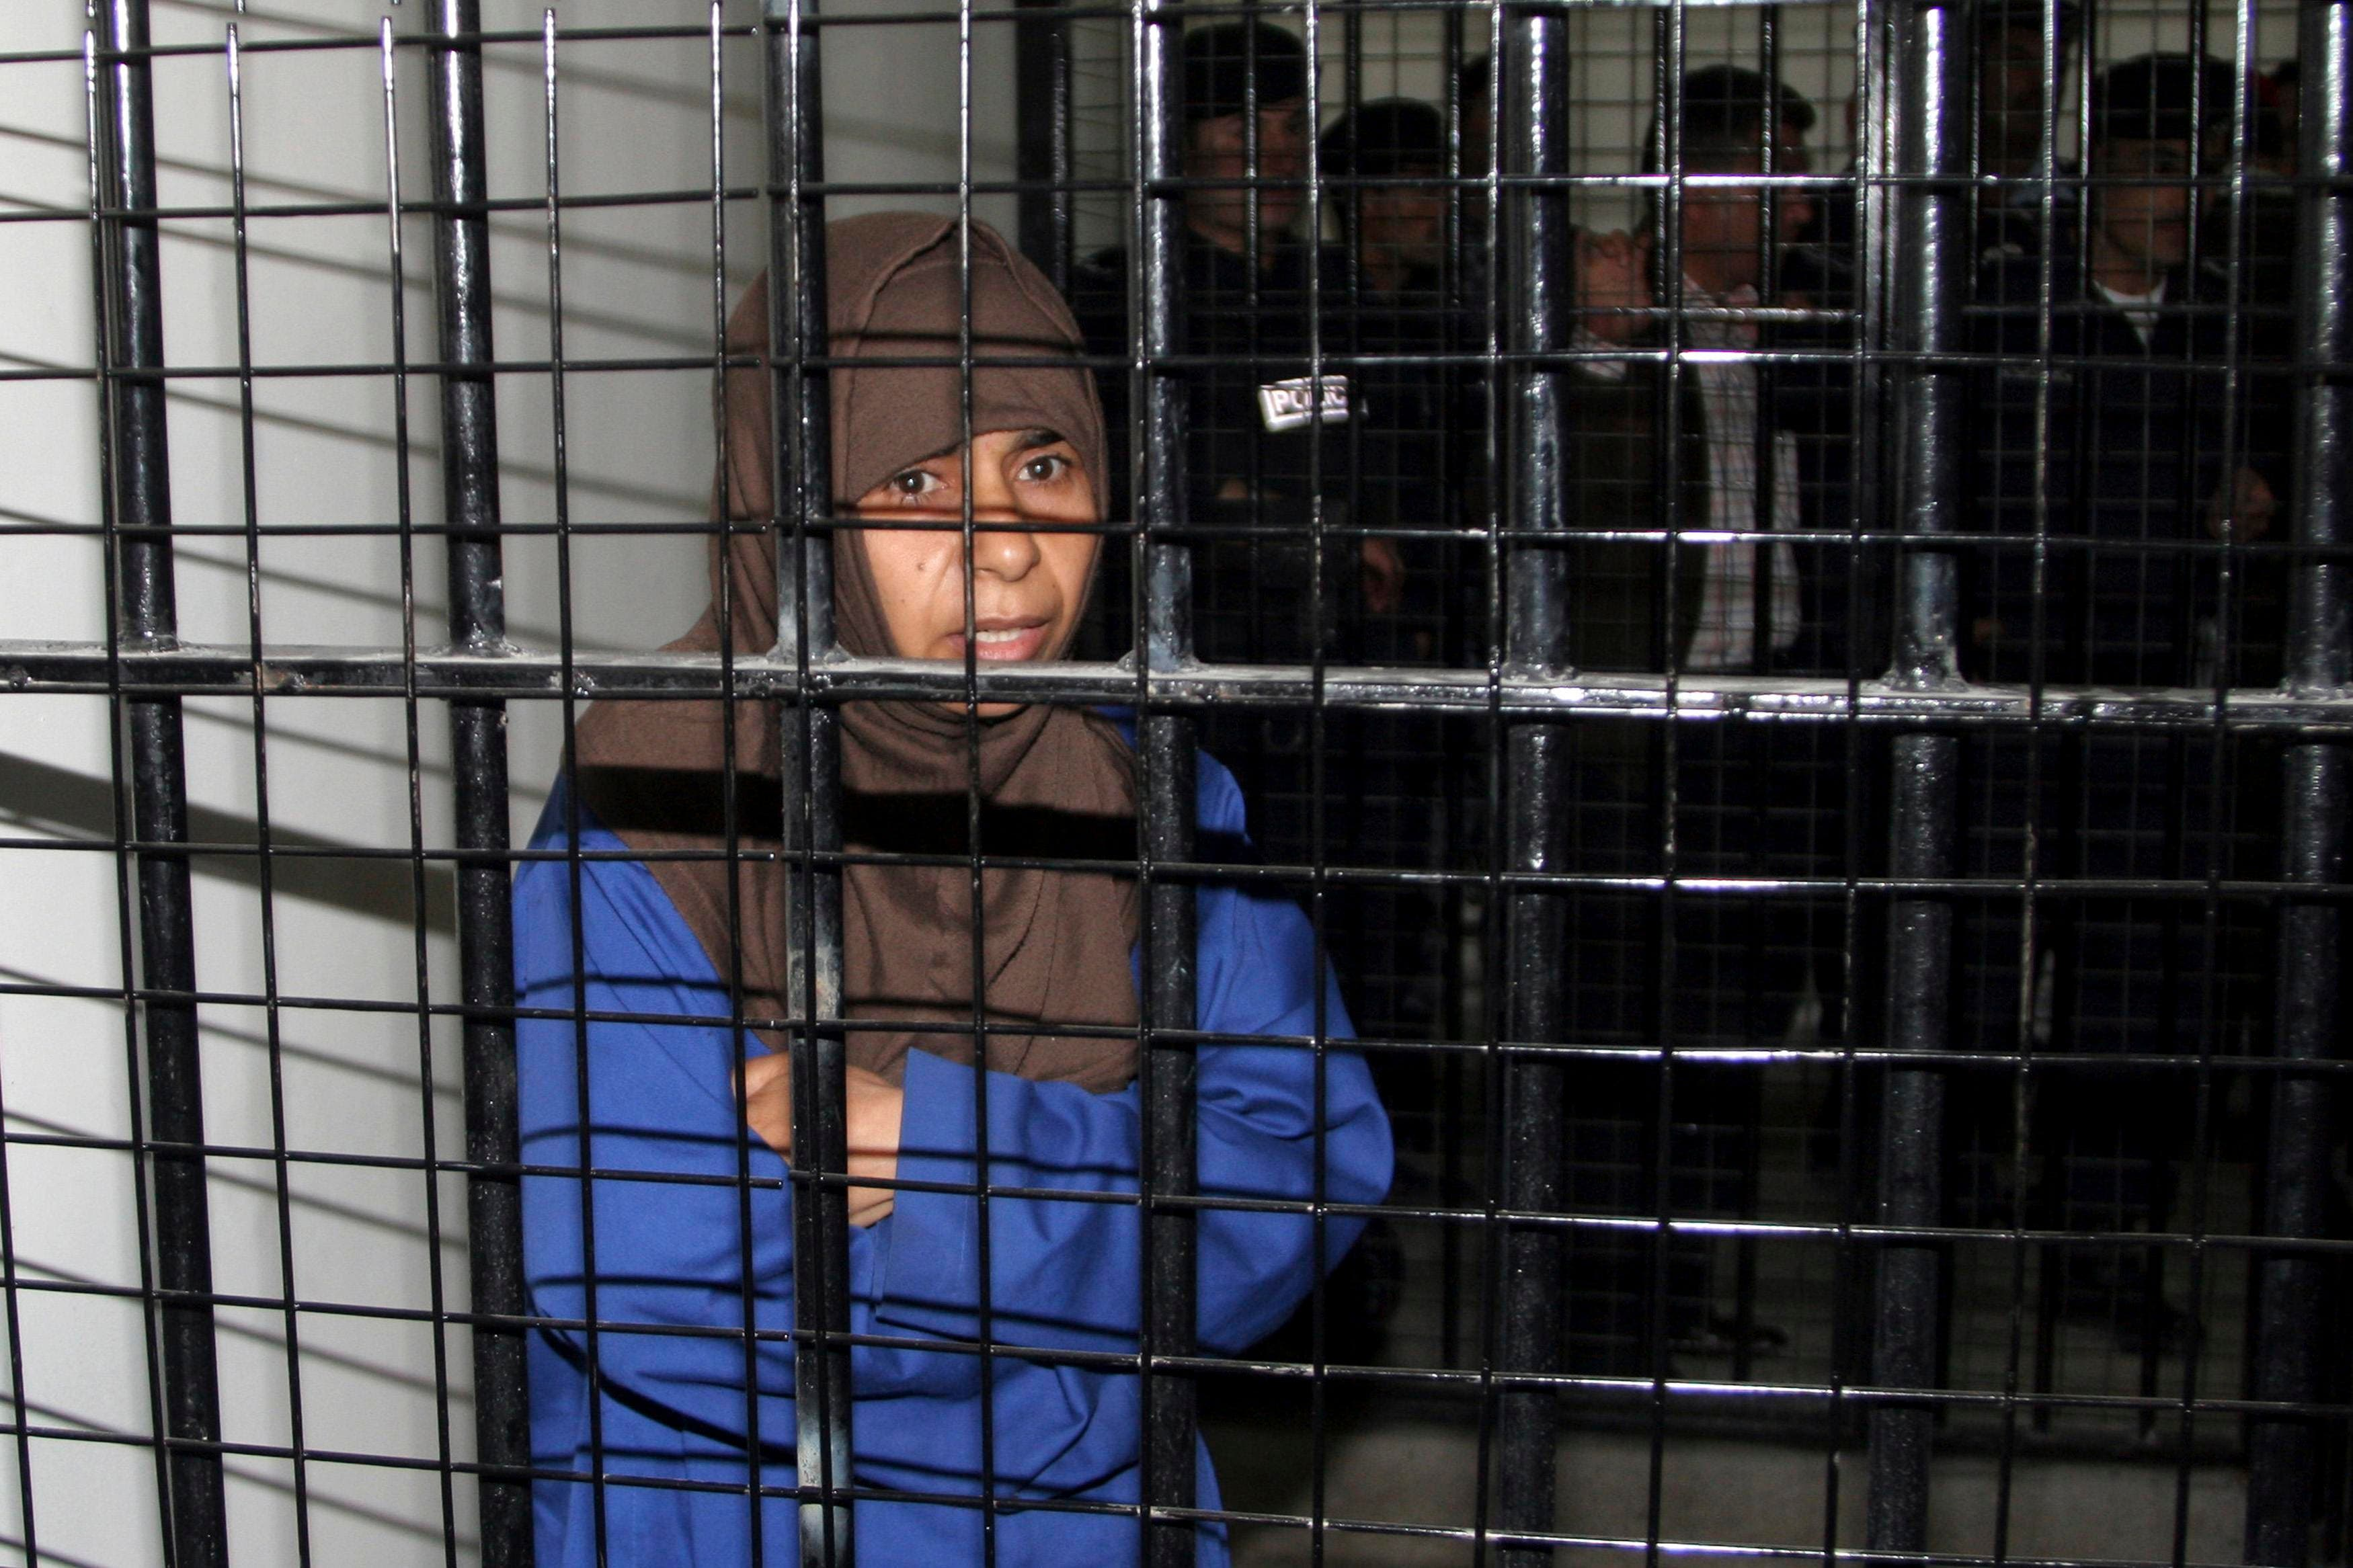 Iraqi Sajida al-Rishawi stands inside a military court at Juwaida prison in Amman in this April 24, 2006 file photo. Senior Japanese officials were meeting late on Jan. 27, 2015. (Reuters)